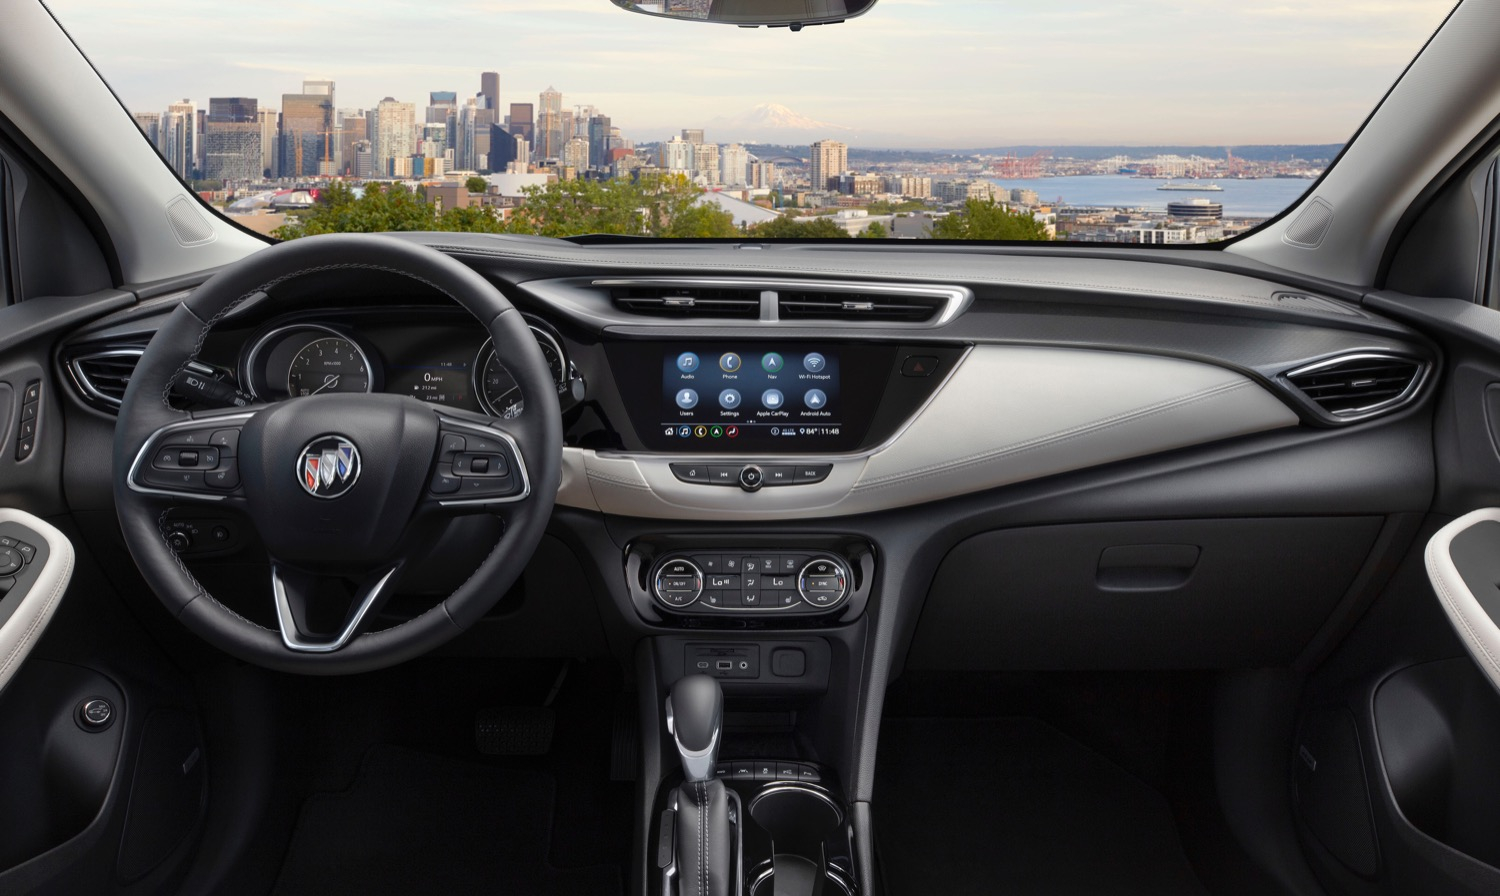 2021 Buick Encore Gx Interior Colors | Gm Authority New 2021 Buick Encore Release Date, Specifications, Exterior Colors